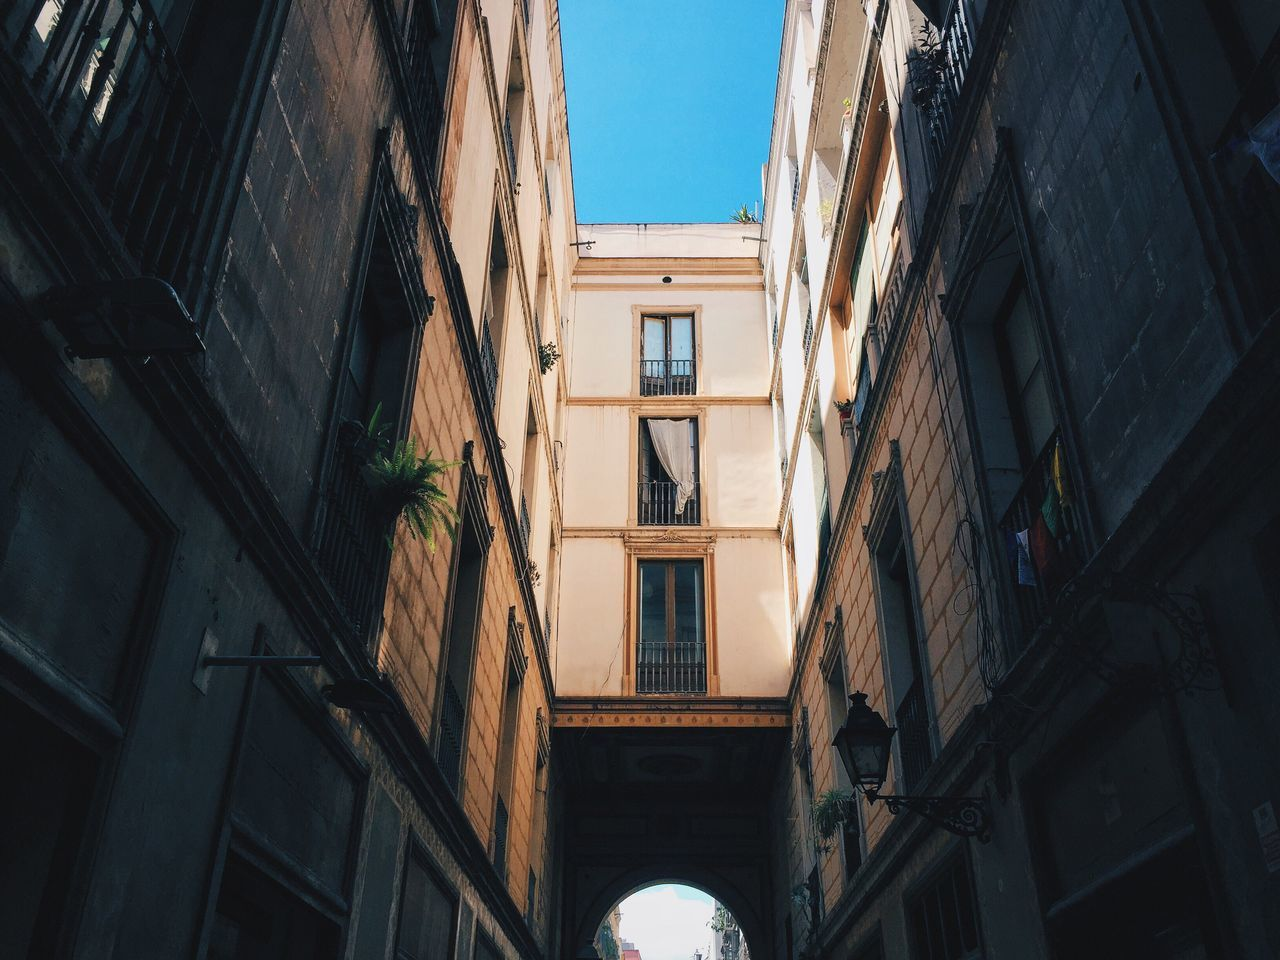 Gothic quarters. Architecture Arches Gothic Apartment Narrow Street Vscocam VSCO Wanderlust Traveling